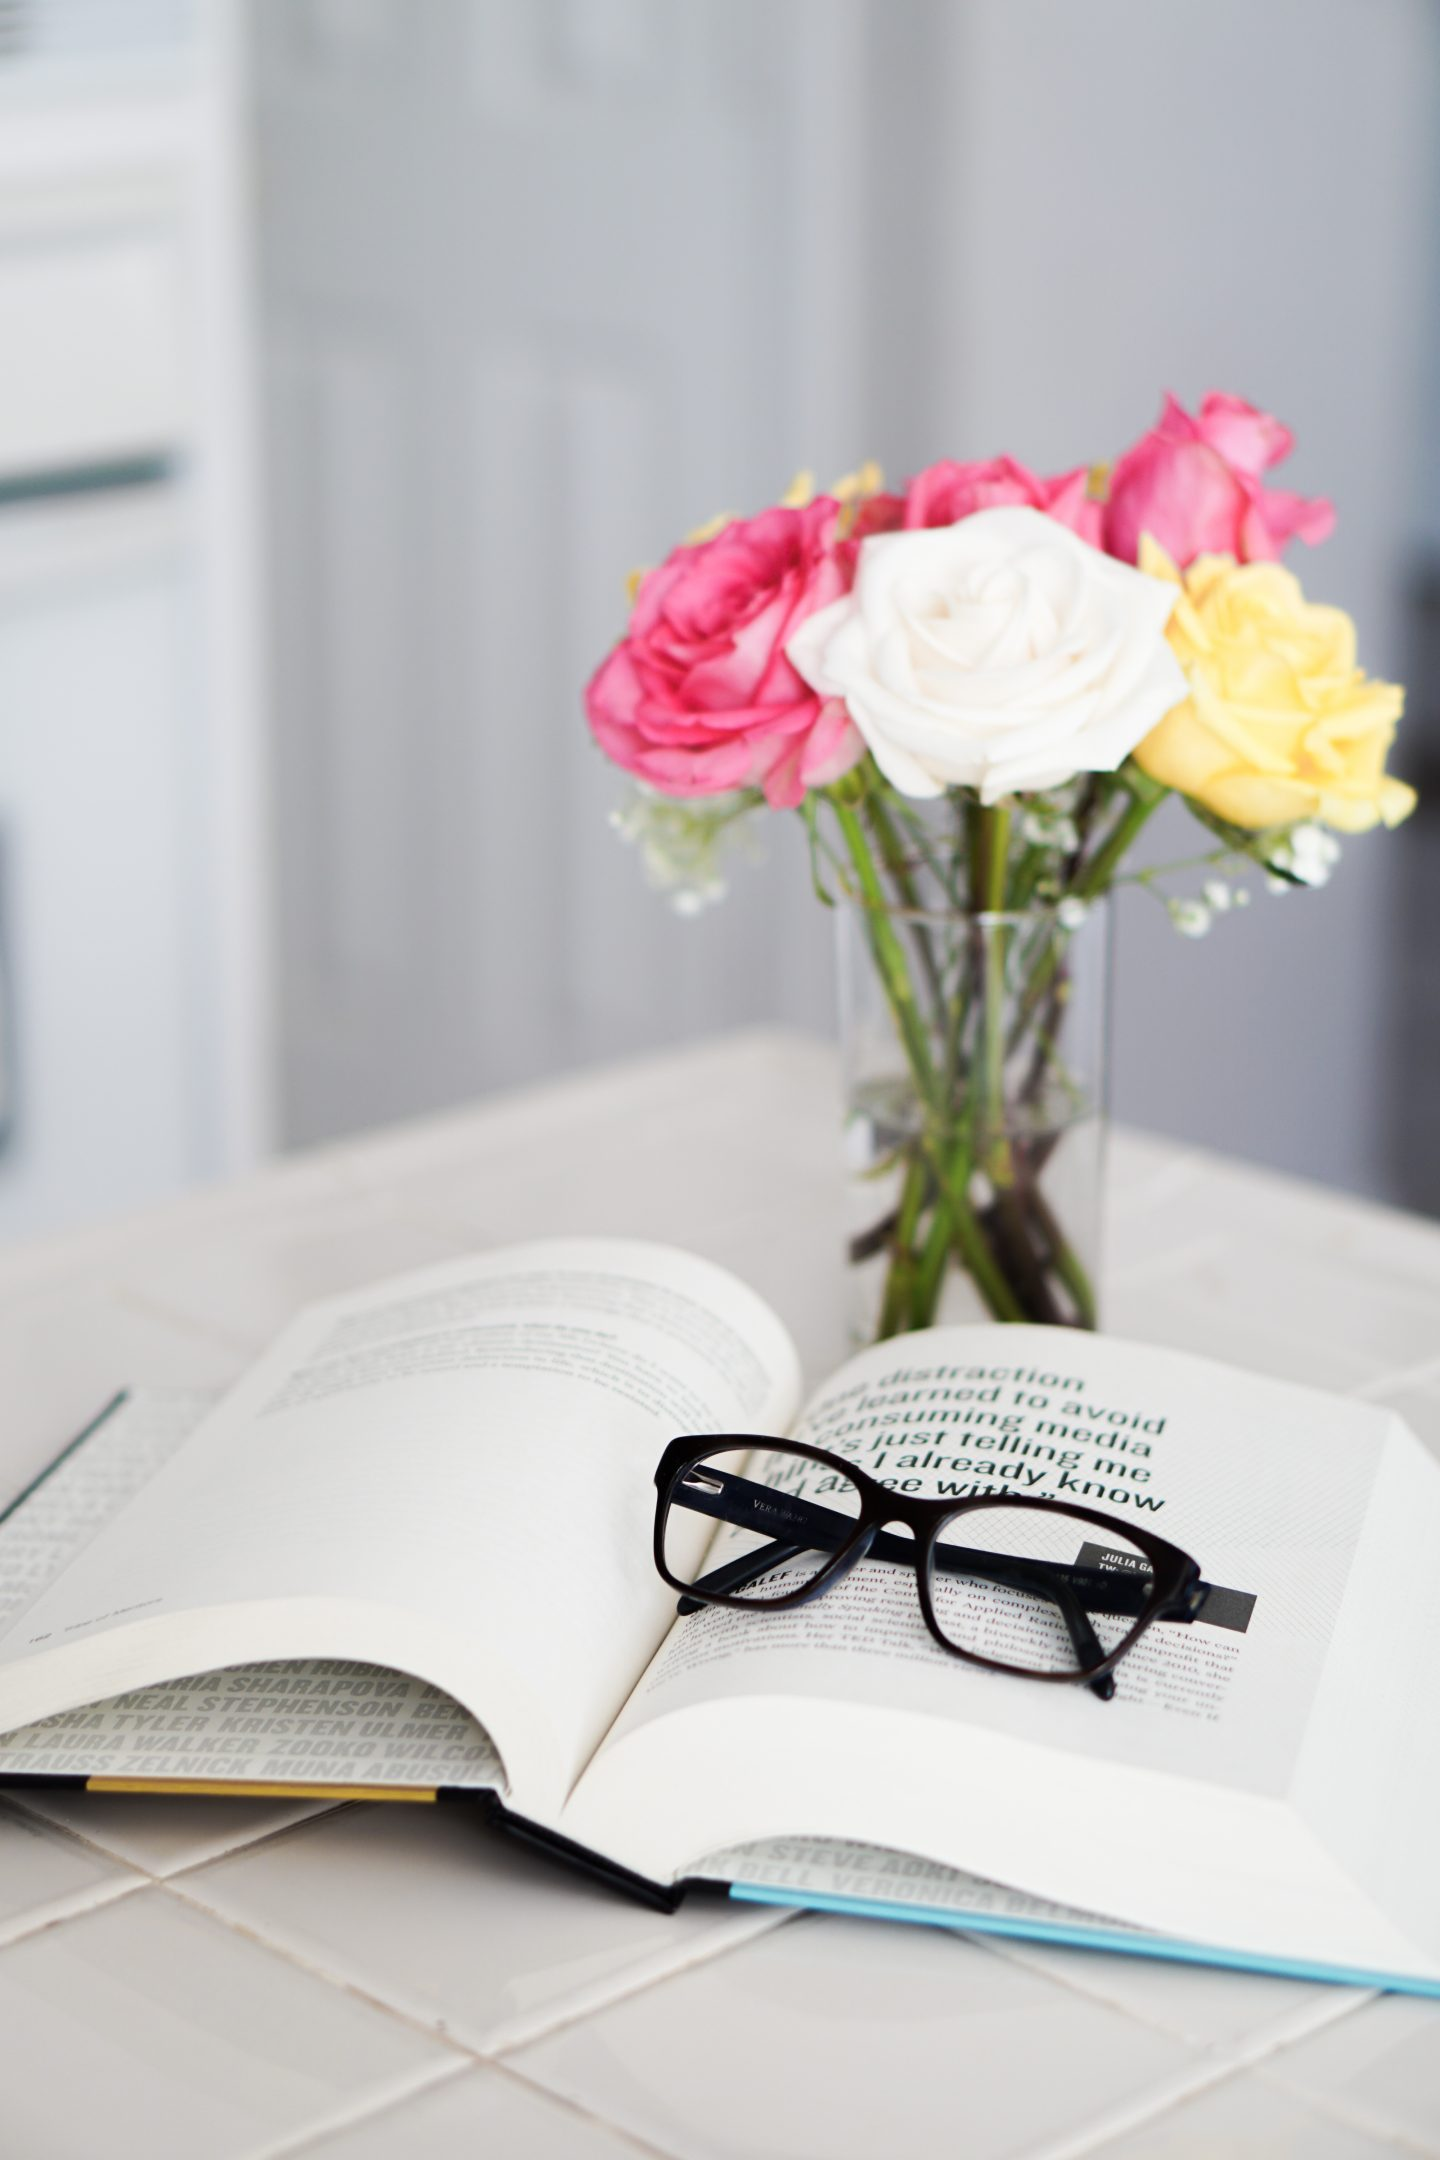 5 Books to Read in Your 20s